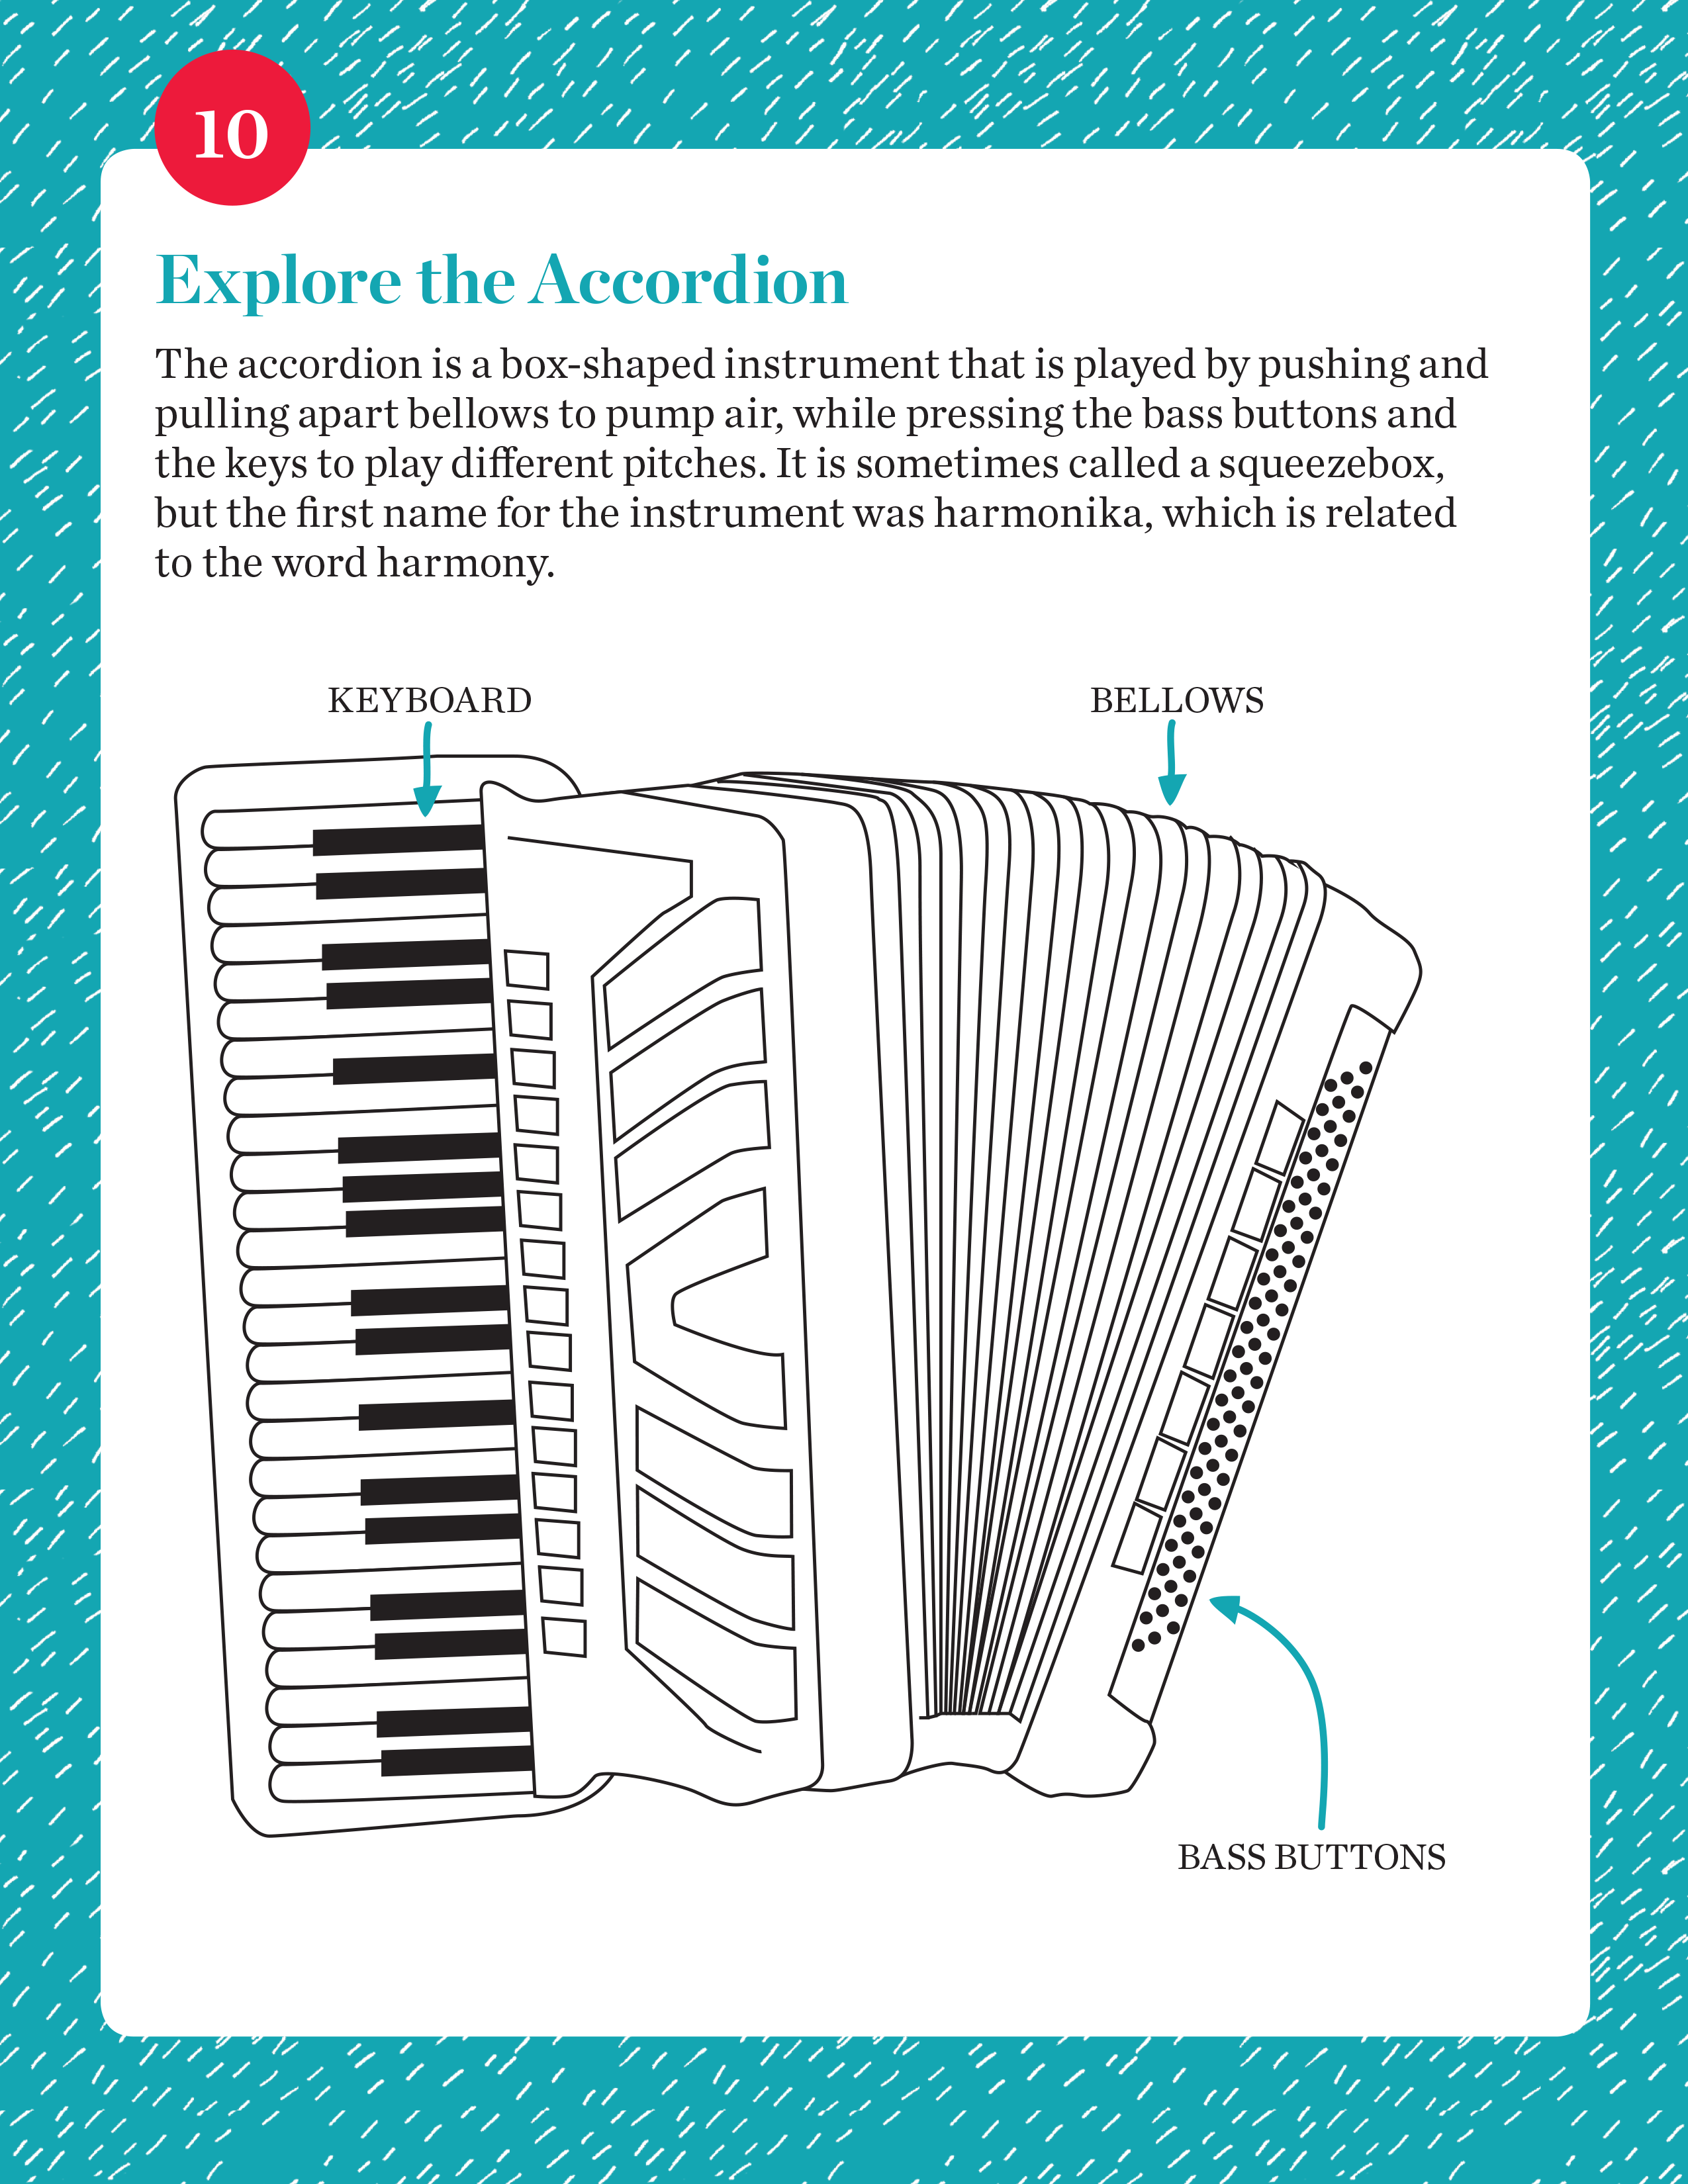 Explore the Accordion